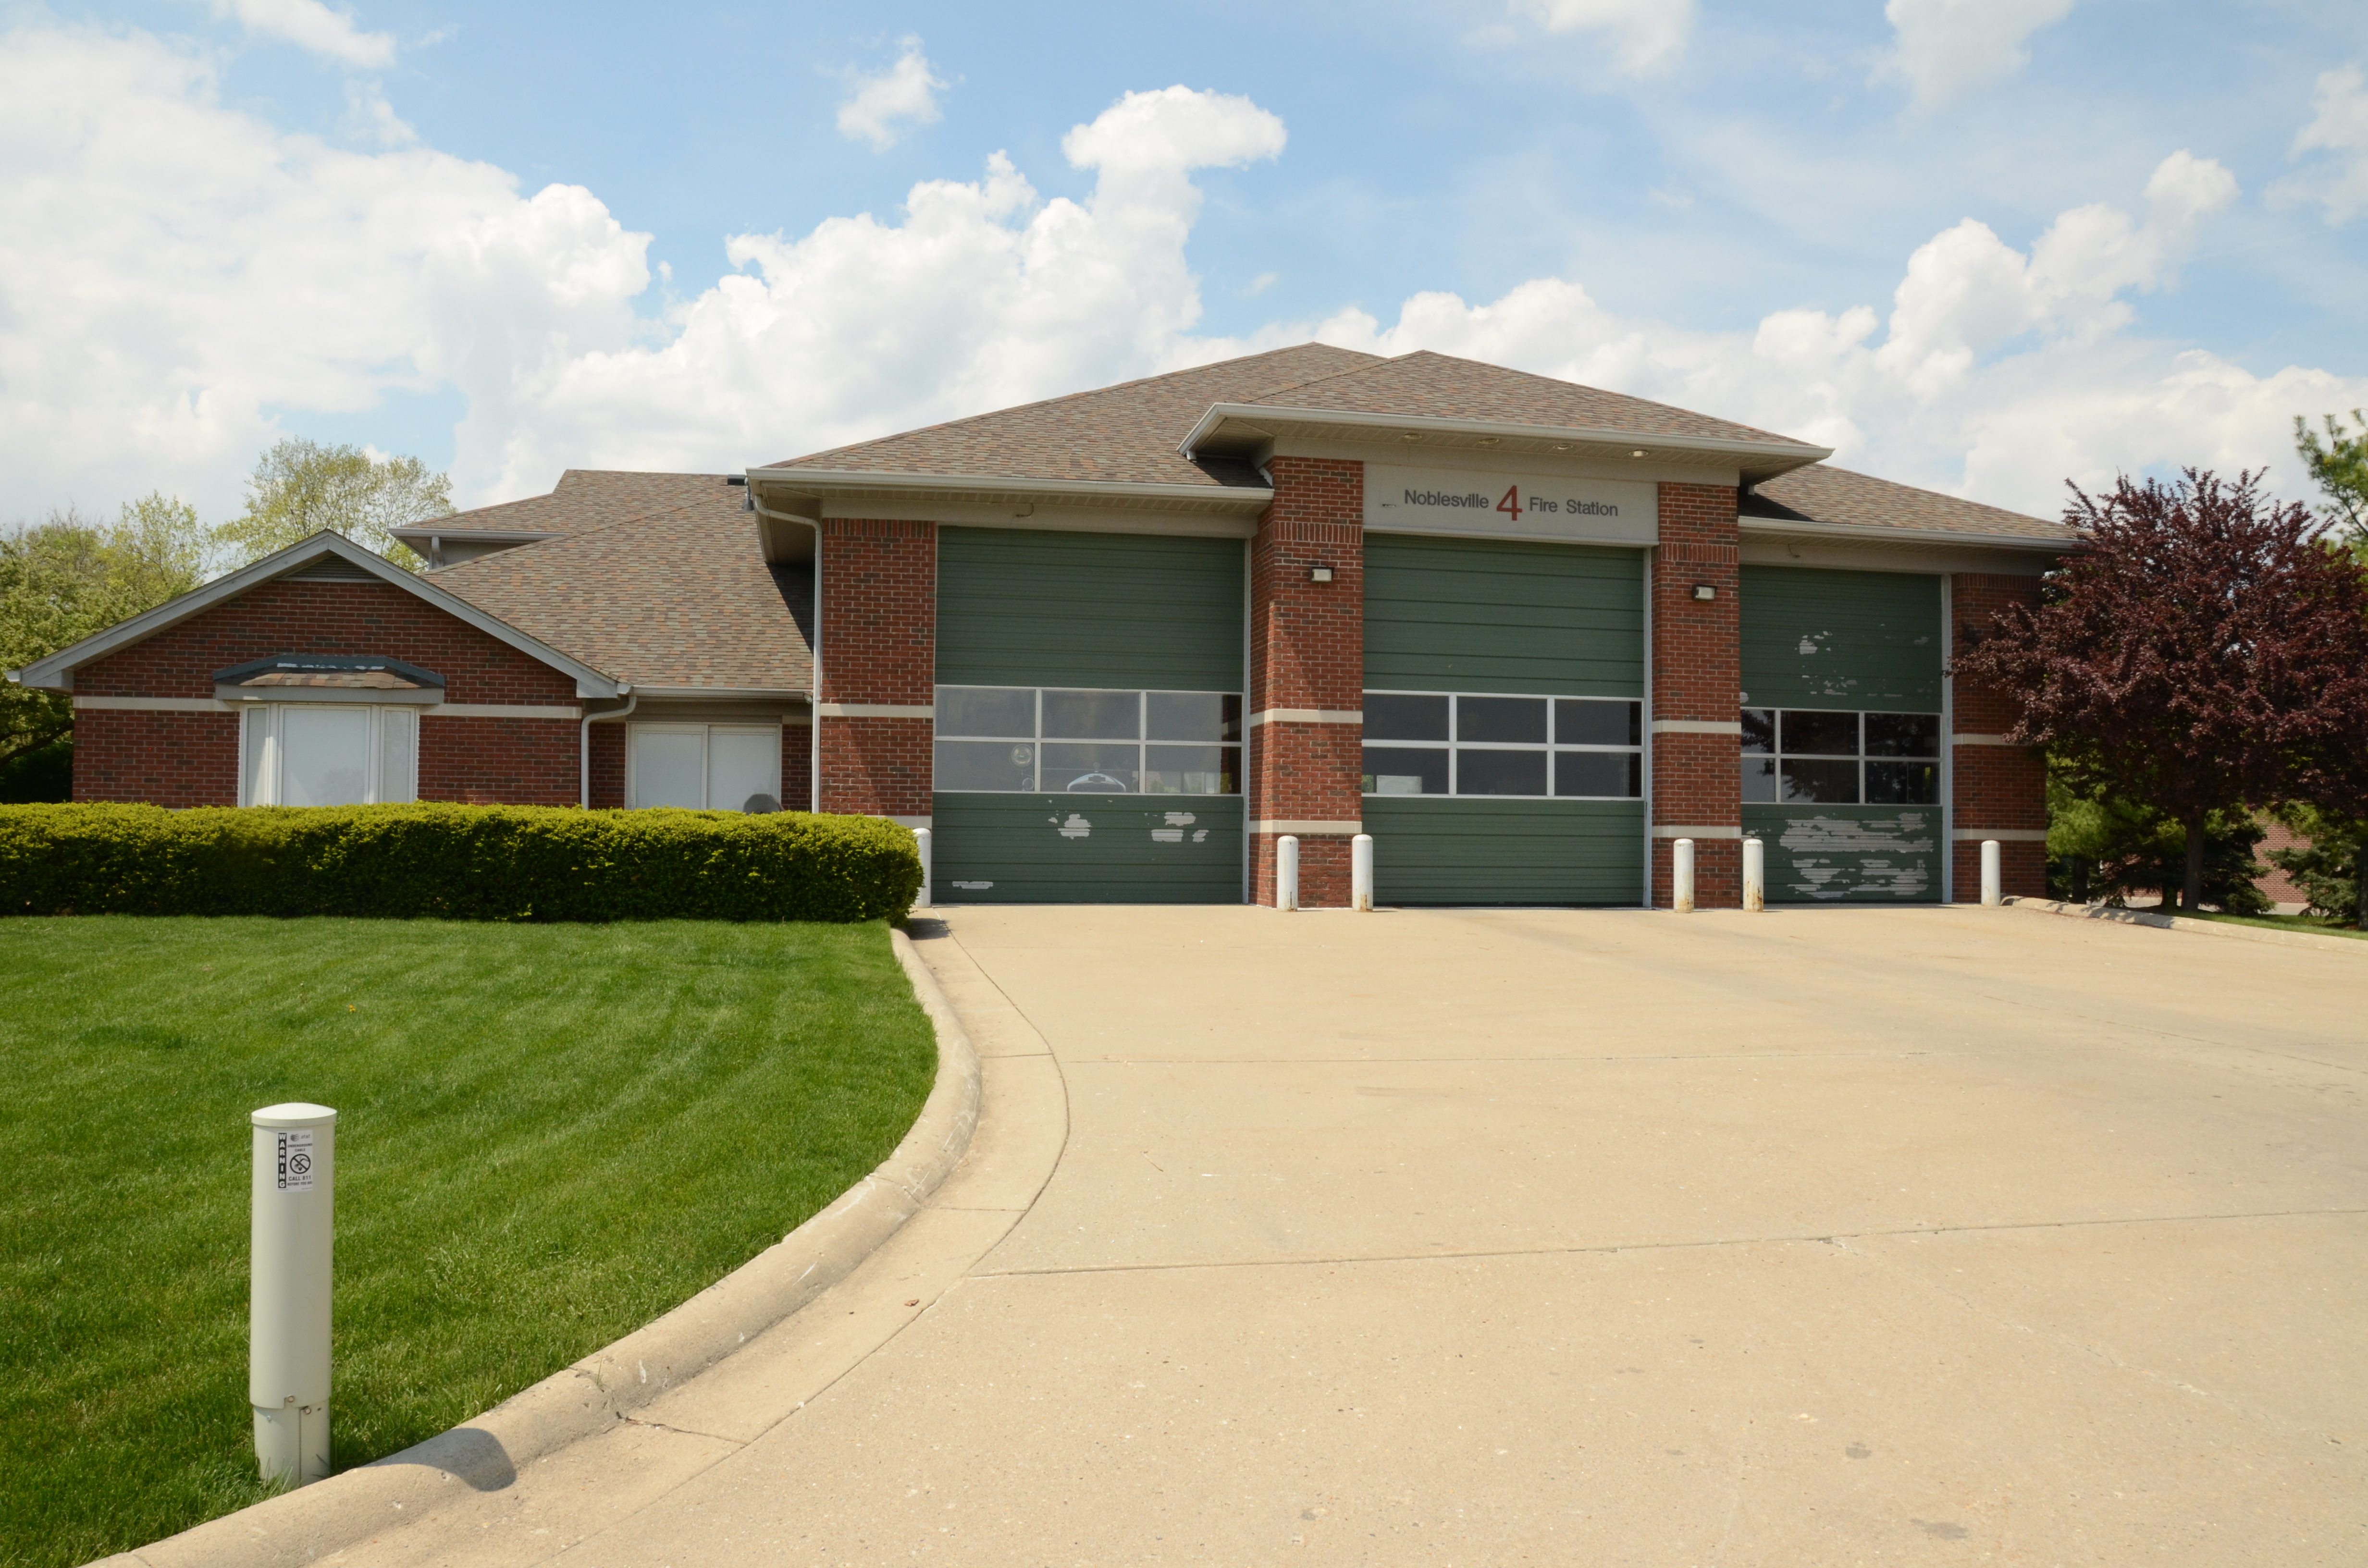 Notice to Bidders - Noblesville Fire Station 74